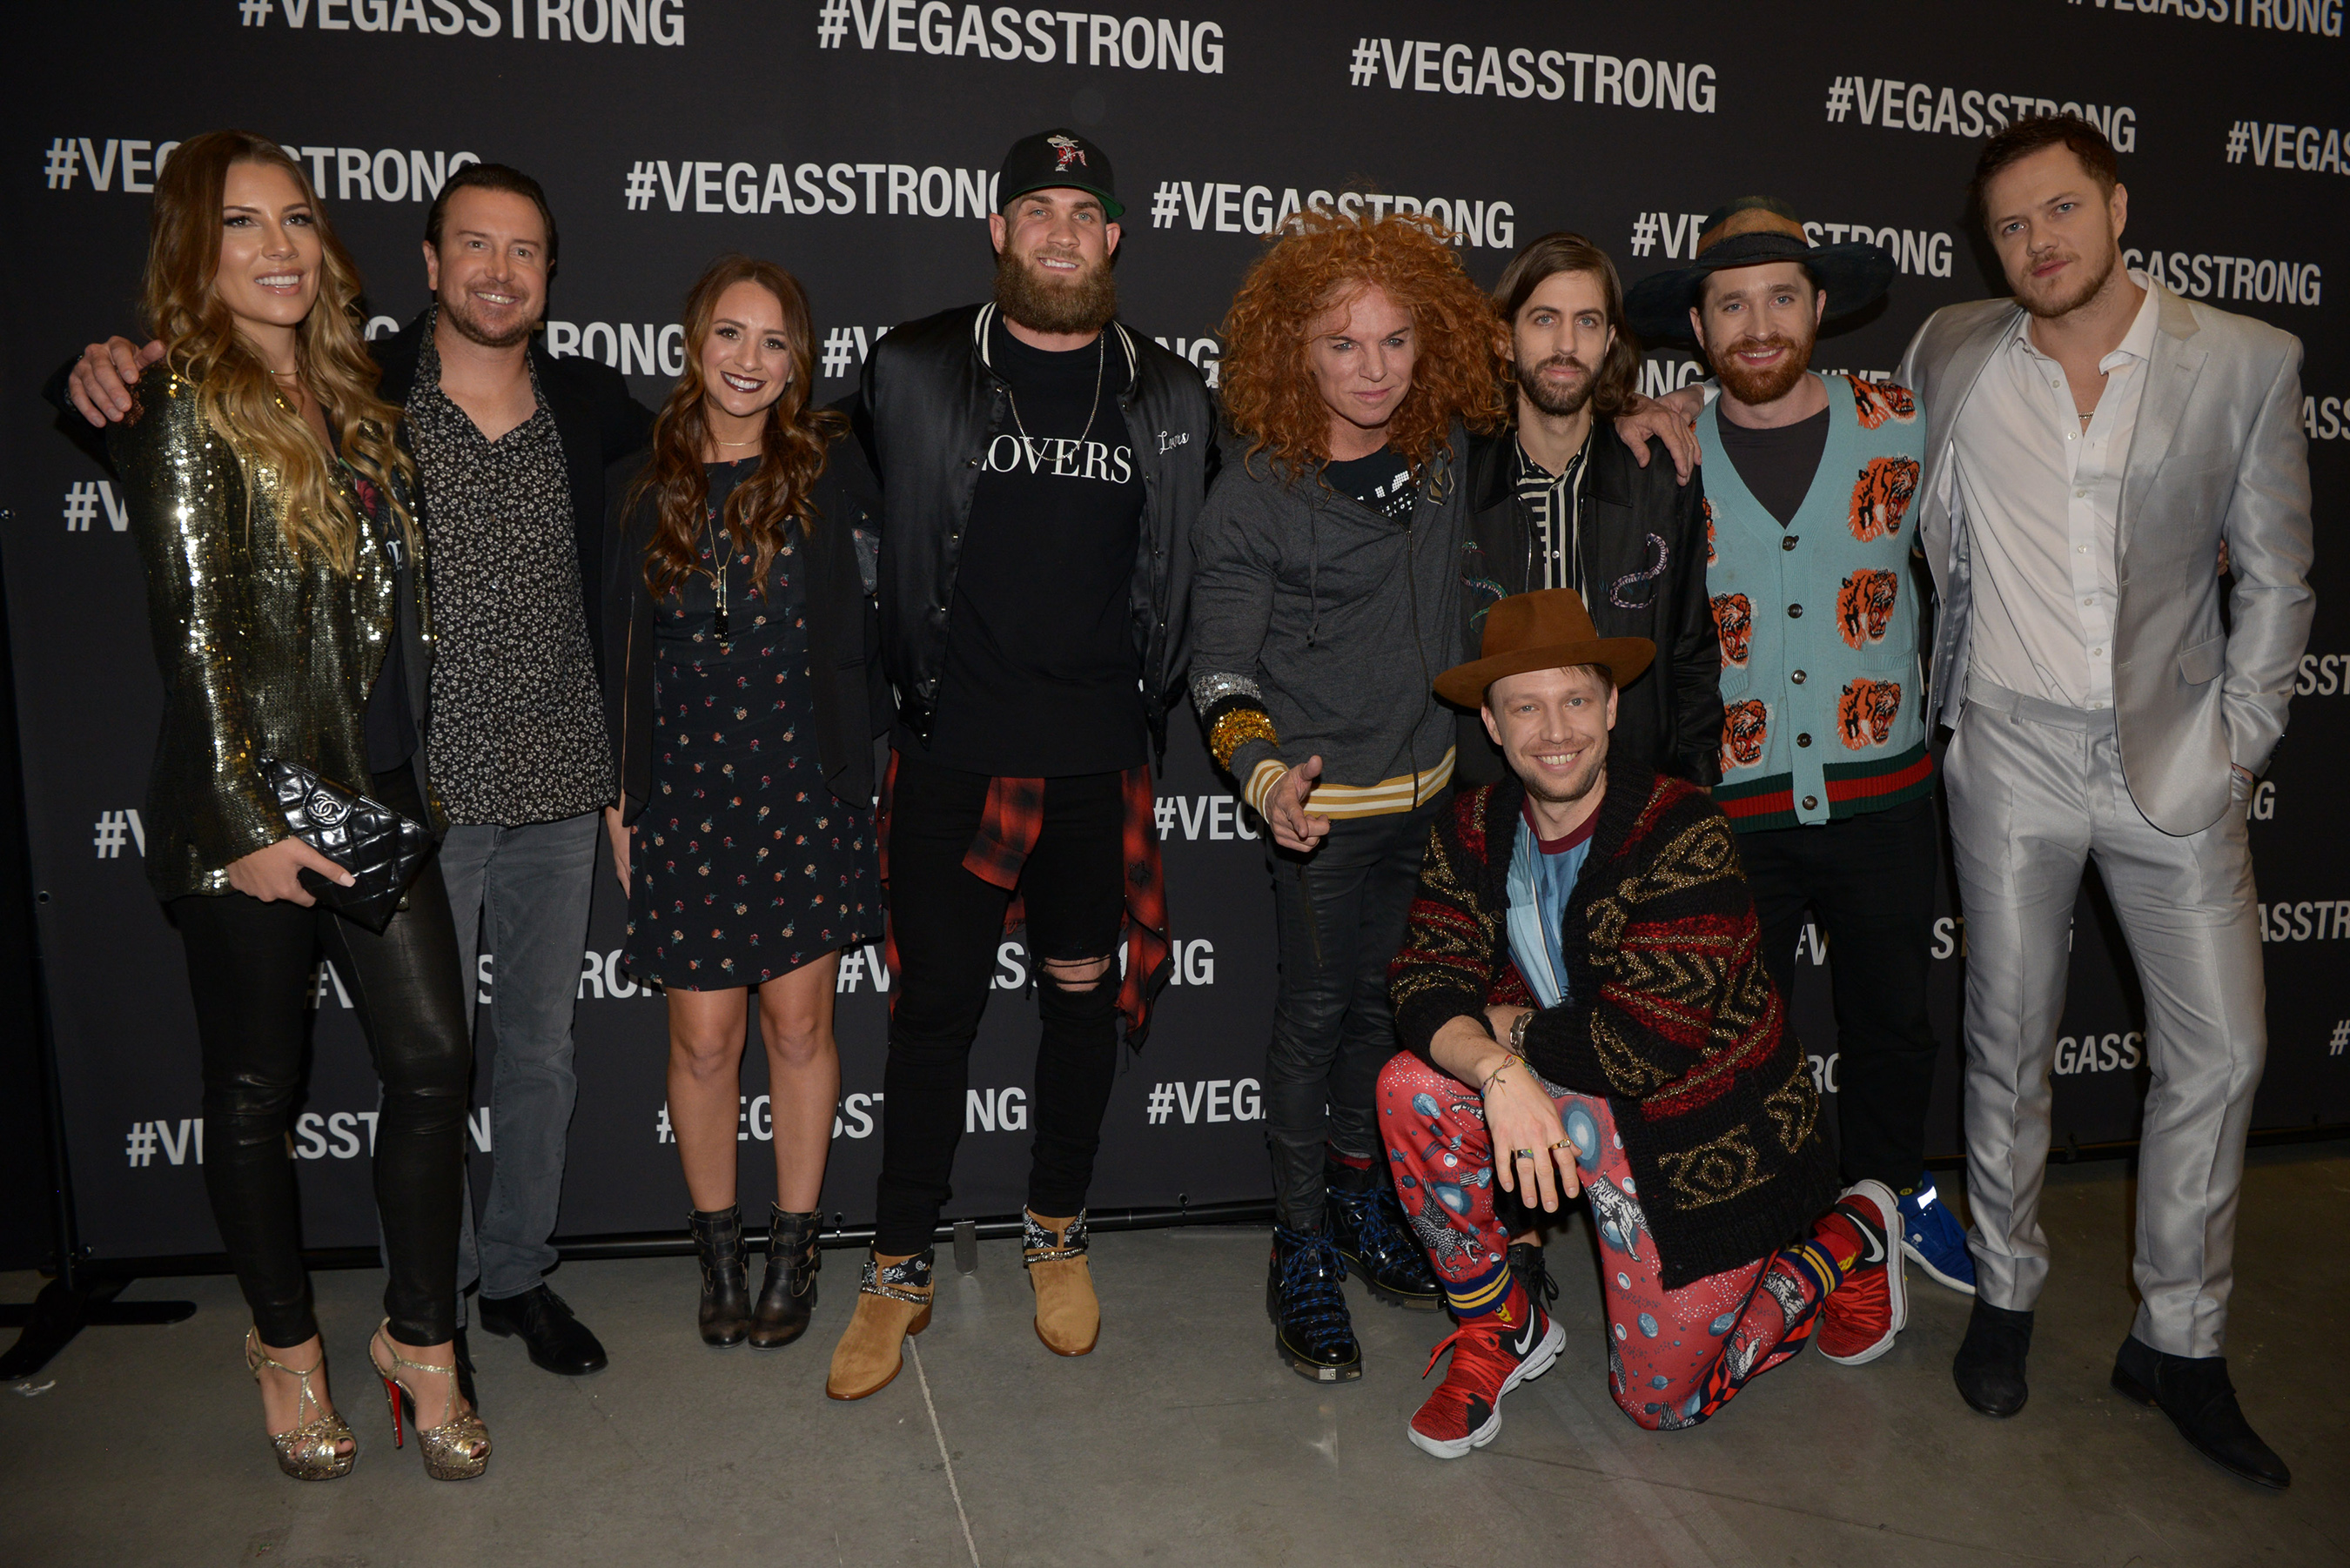 Celebrities at Vegas Strong Benefit Concert